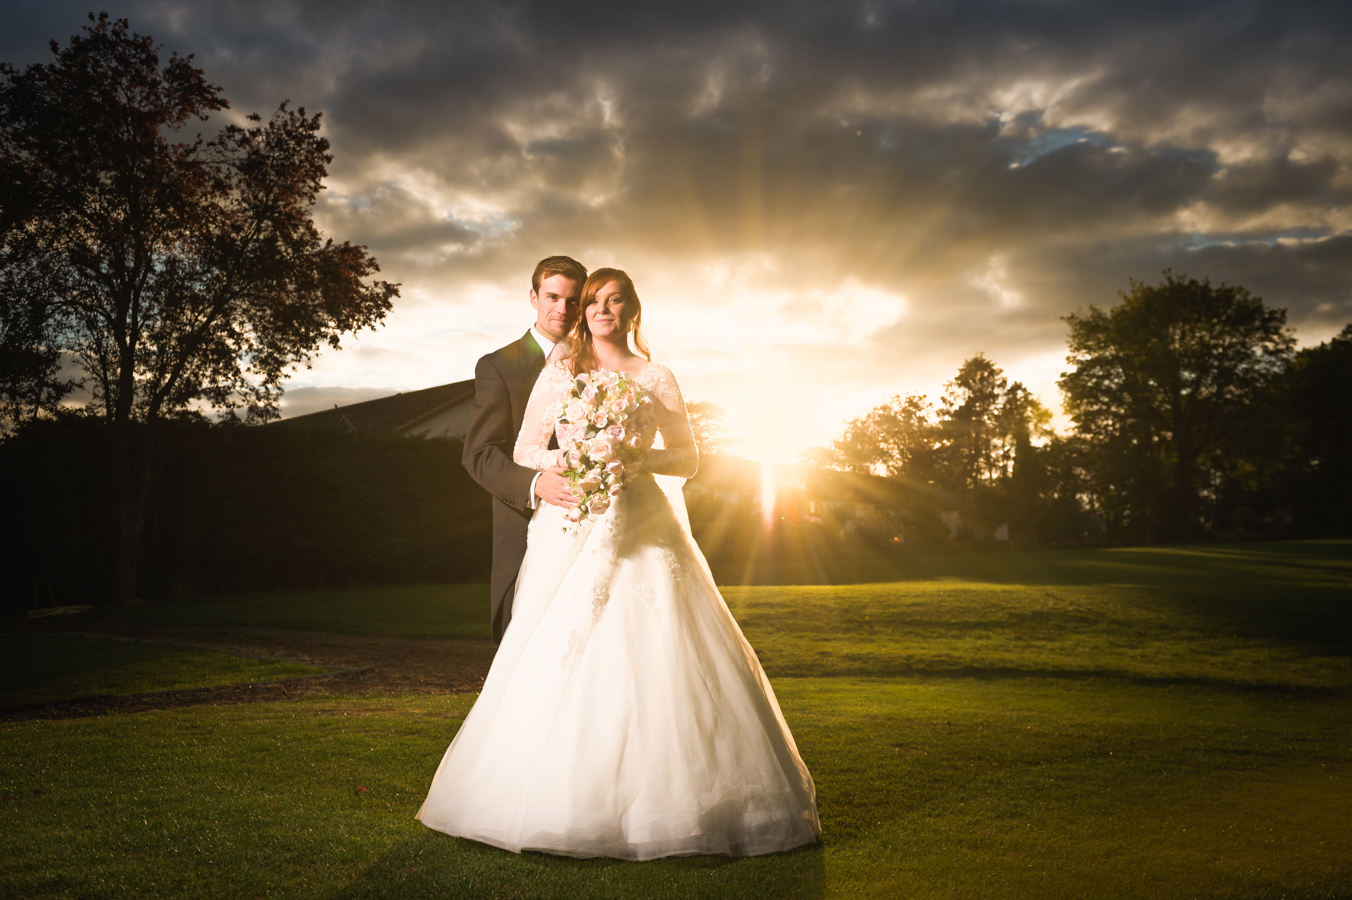 mk wedding photography at ullesthrope court hotel